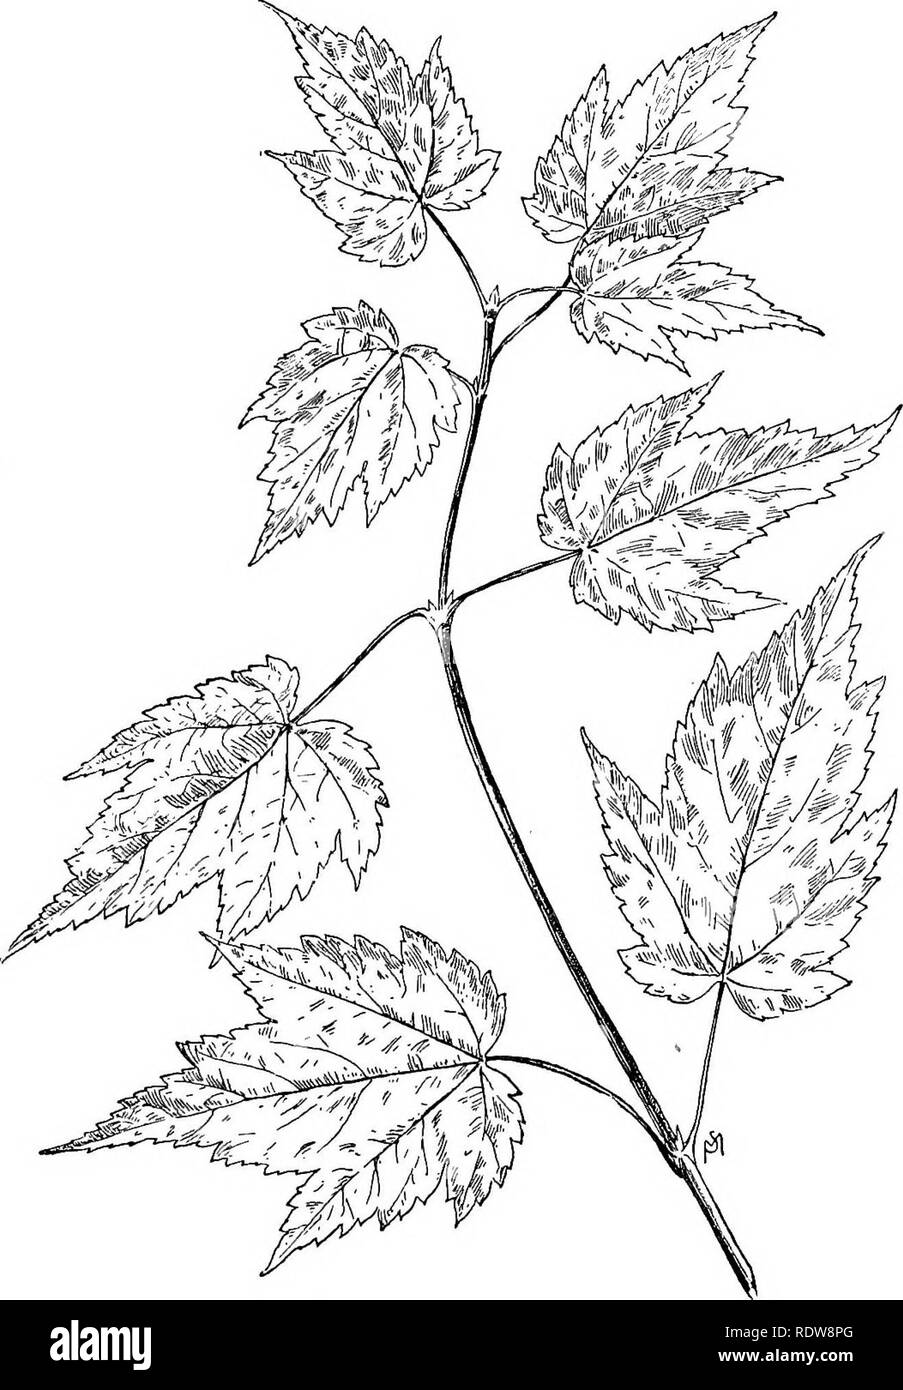 . Familiar trees and their leaves . Trees. THE MAPLES. 193. Mountain Maple,. Please note that these images are extracted from scanned page images that may have been digitally enhanced for readability - coloration and appearance of these illustrations may not perfectly resemble the original work.. Mathews, F. Schuyler (Ferdinand Schuyler), 1854-1938. New York : D. Appleton - Stock Image